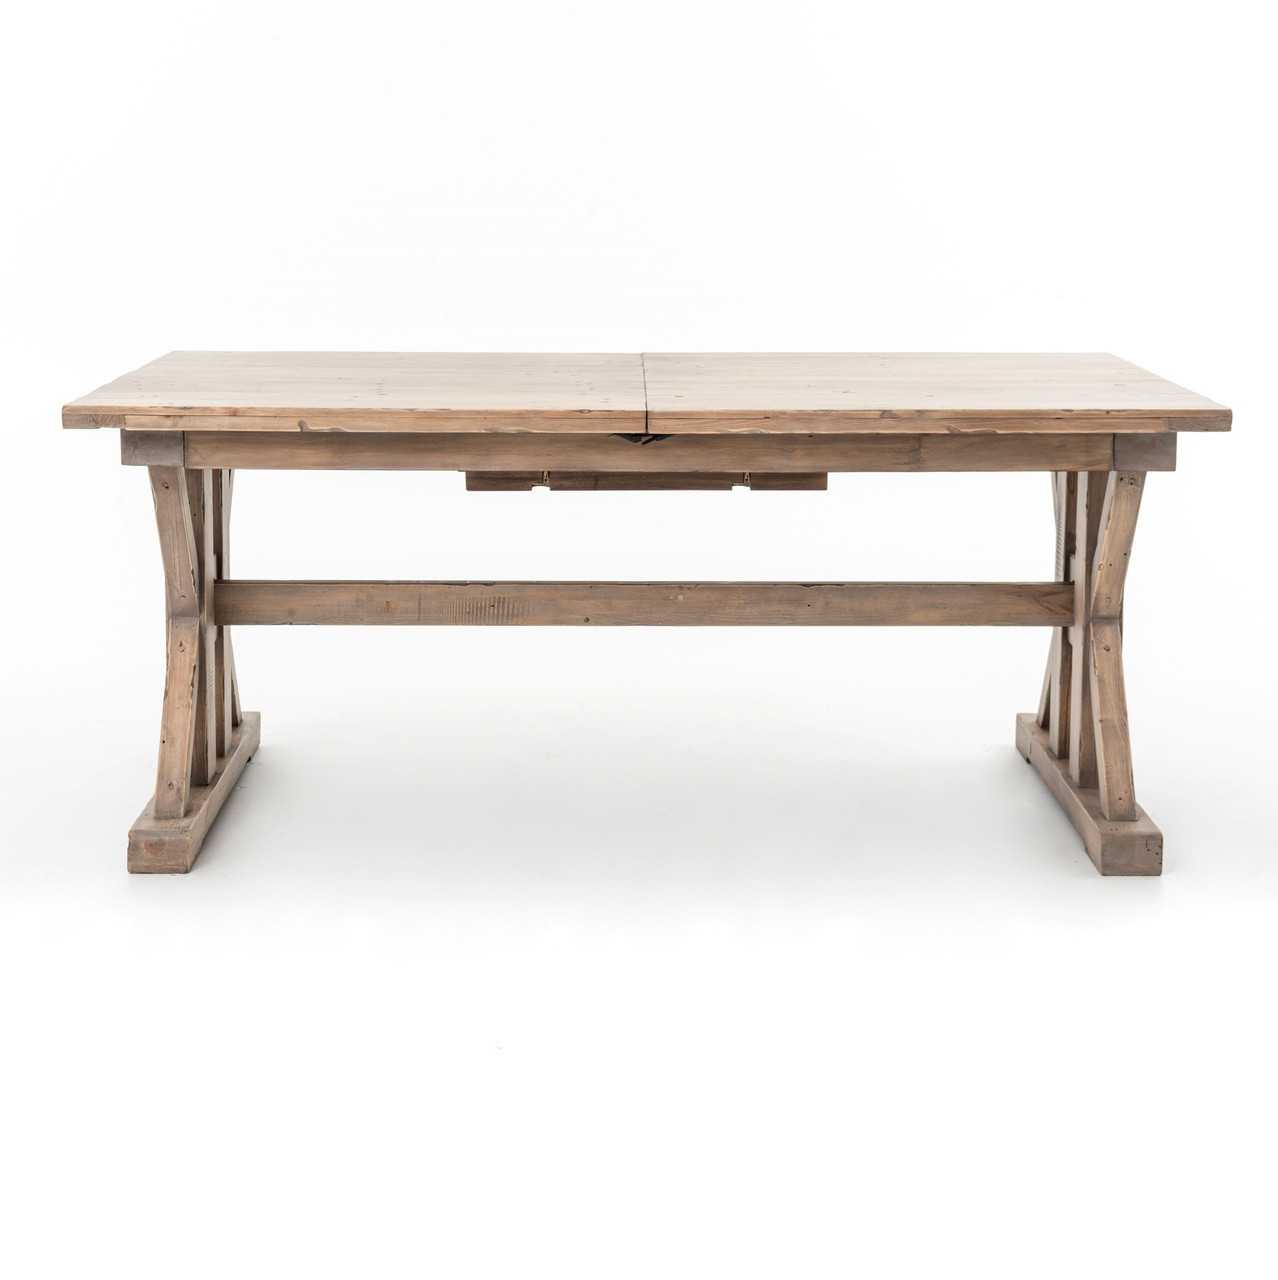 Coastal Natural Wood Trestle Extension Dining Table 96  : CoastalNaturalWoodTrestleExtensionDiningTable712197143138477212801280 from www.zinhome.com size 1278 x 1280 jpeg 121kB